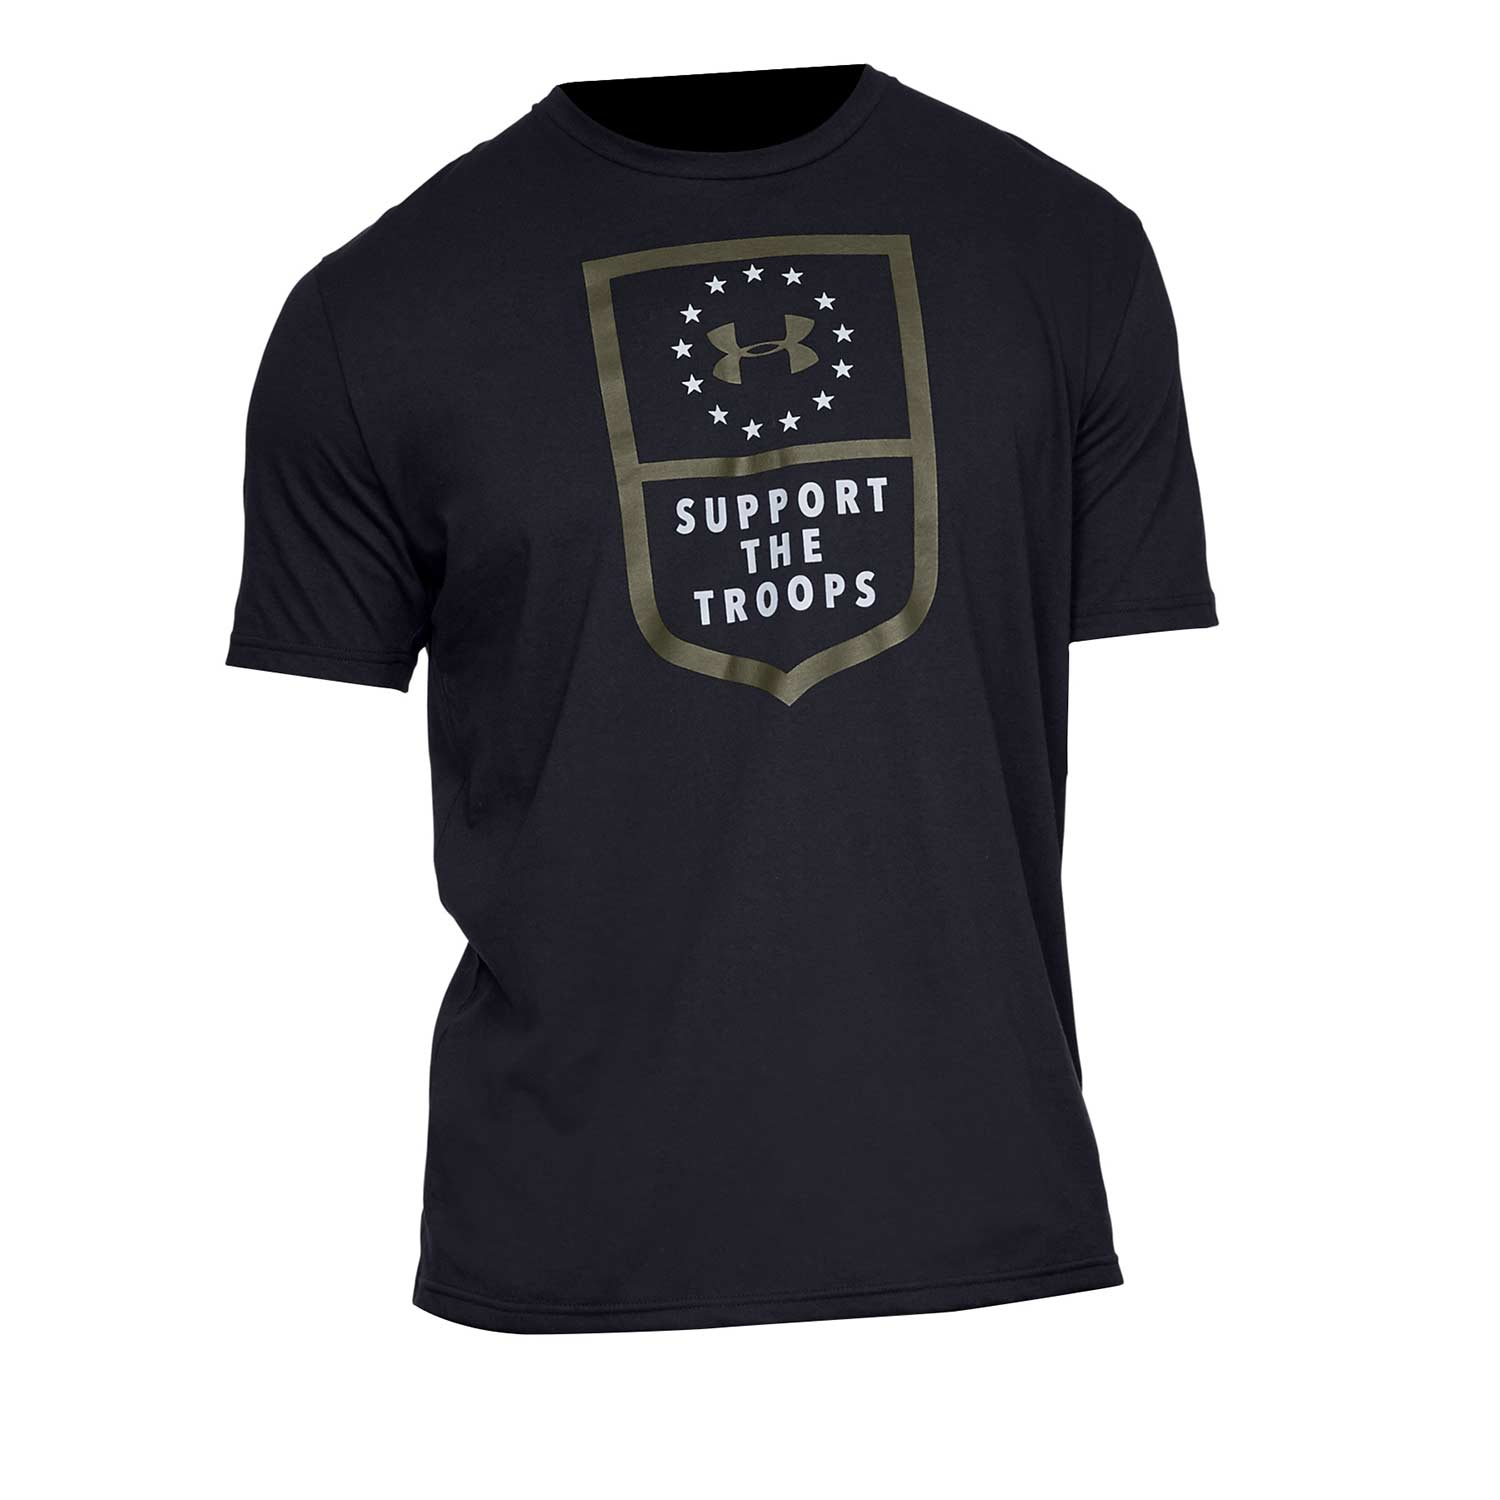 Under Armour Freedom Support the Troops Graphic T-Shirt